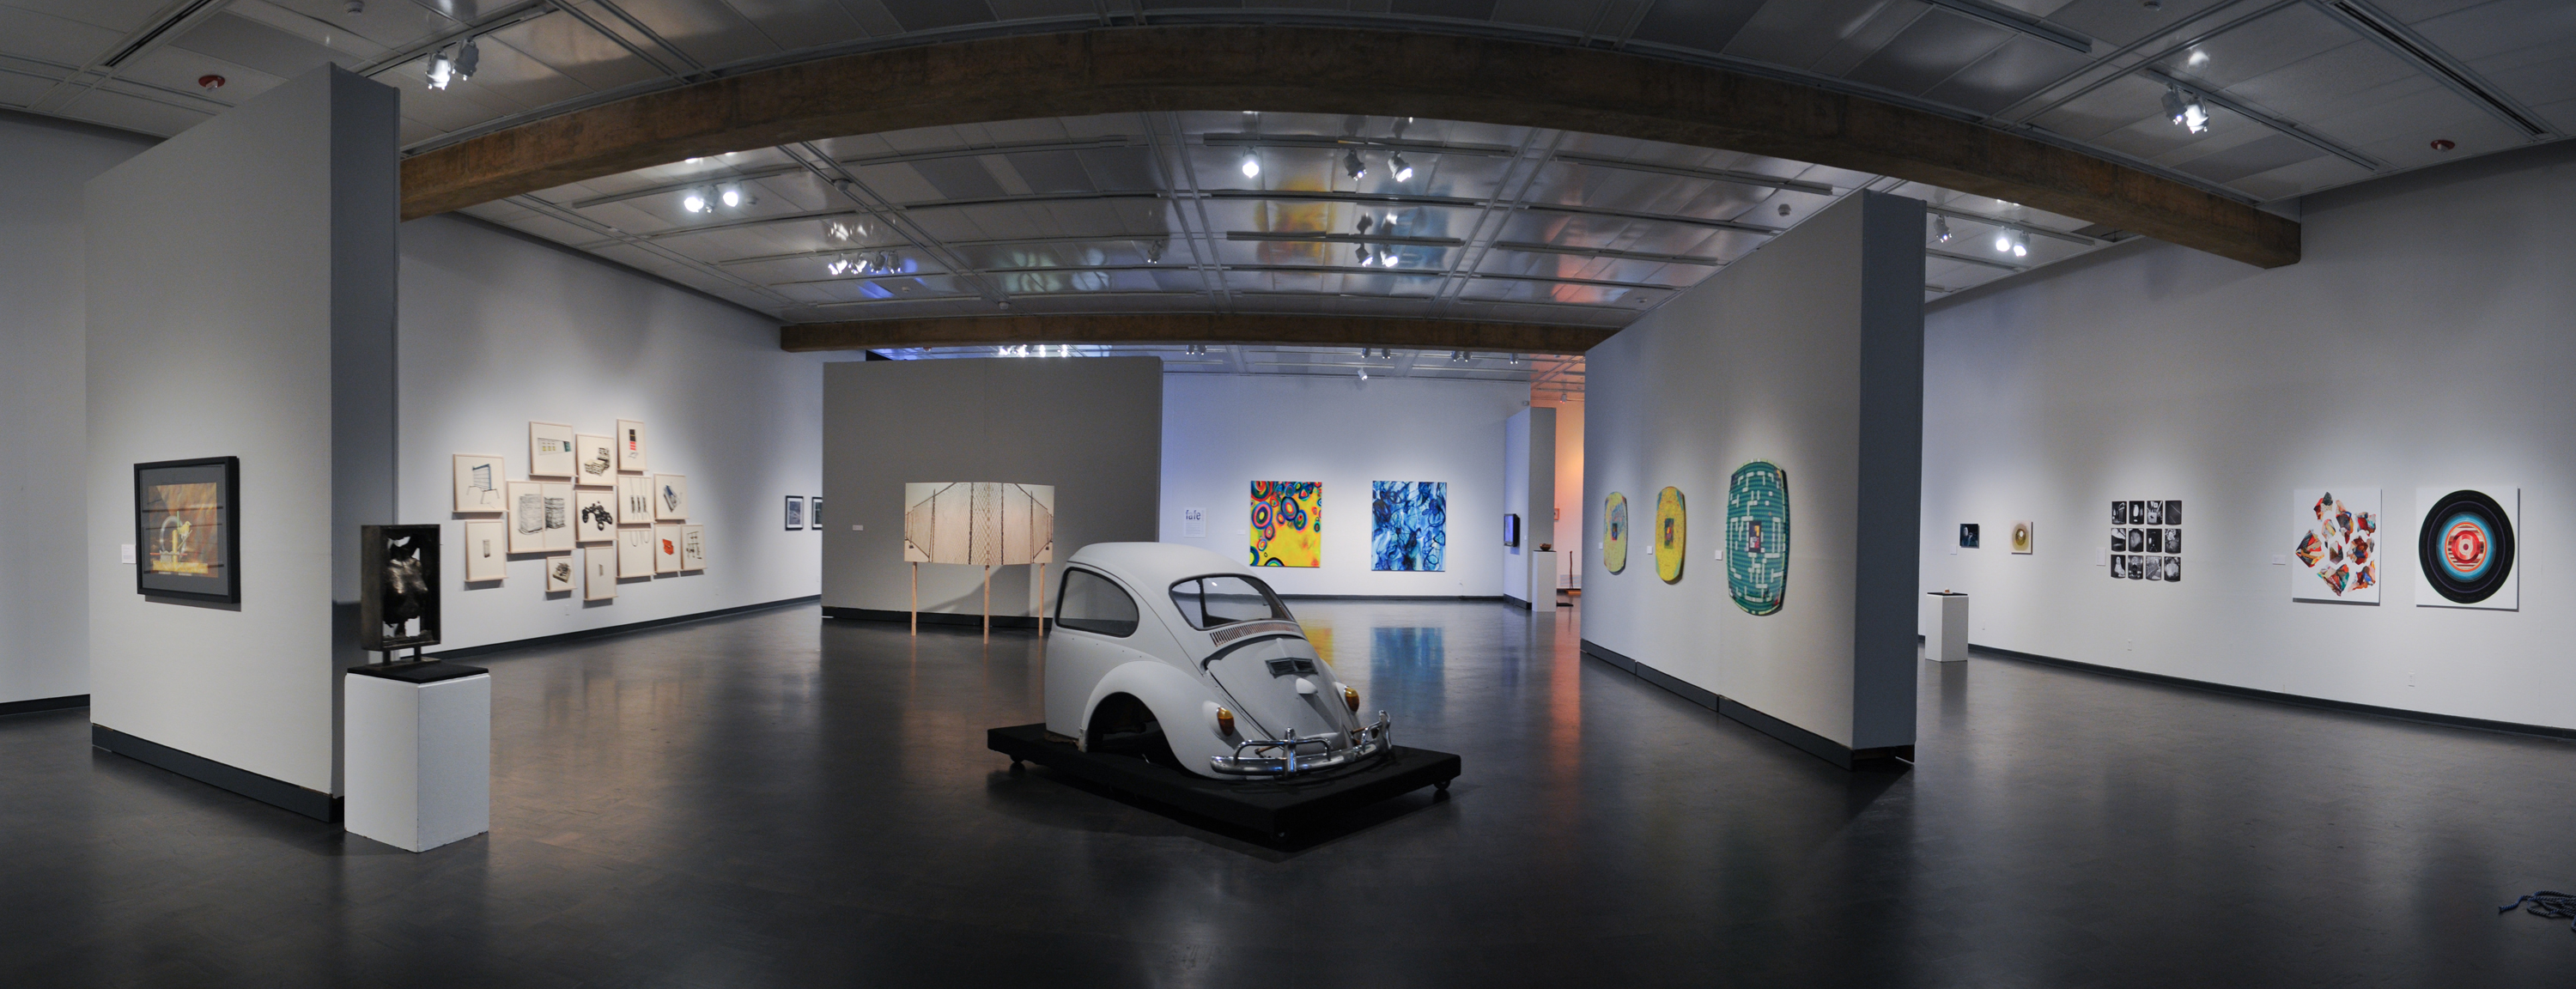 FAFE 2013: Biennial show displays faculty's enjoyably diverse approach to art